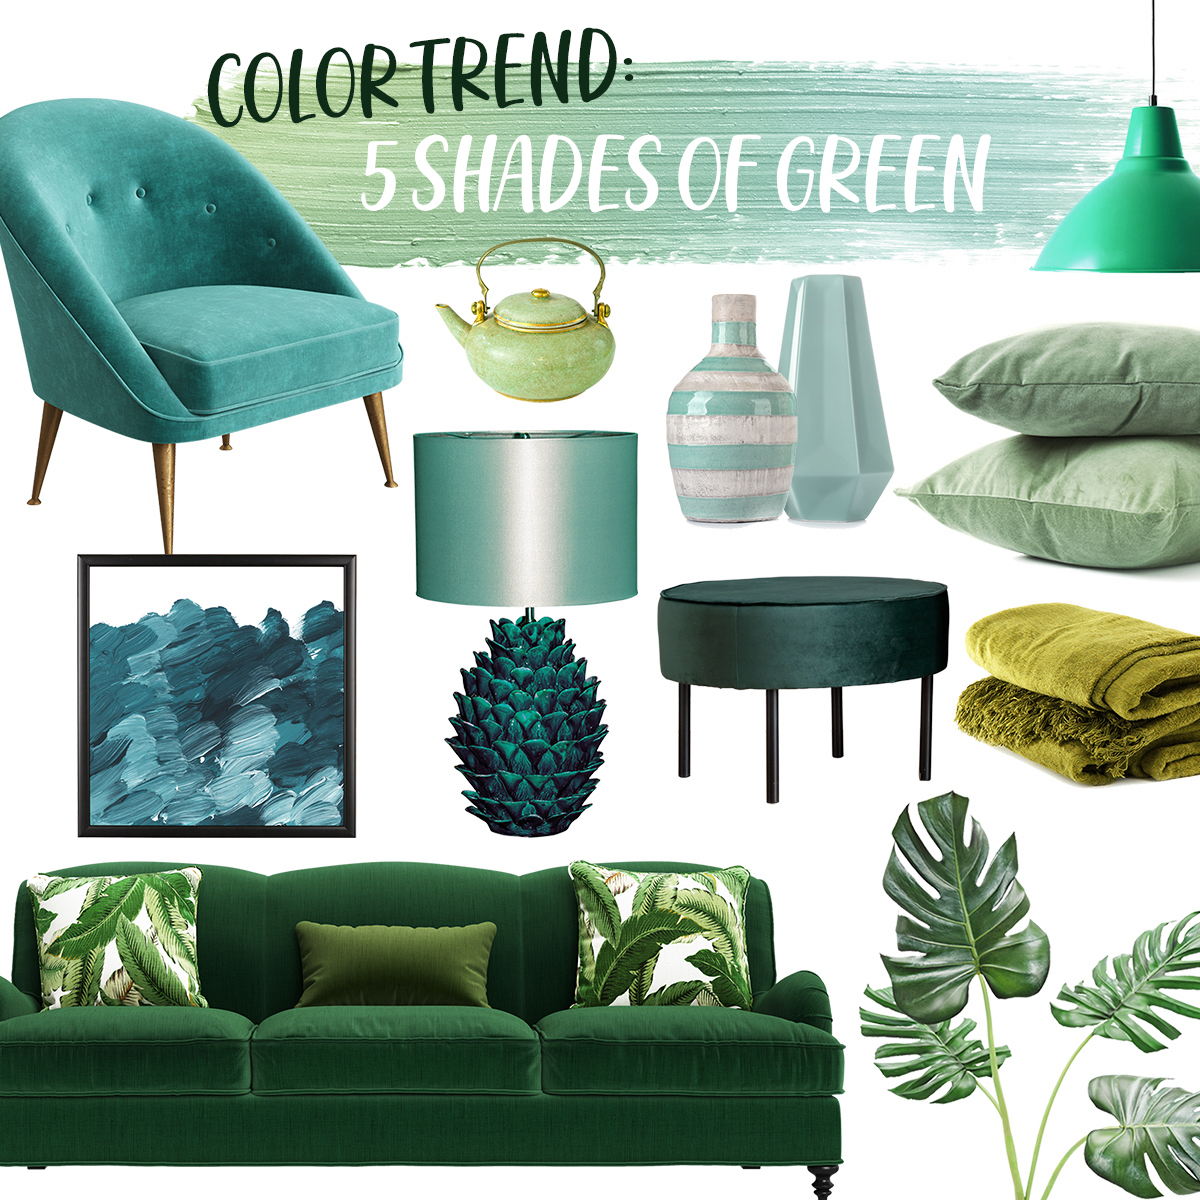 Color trend - 5 shades of green